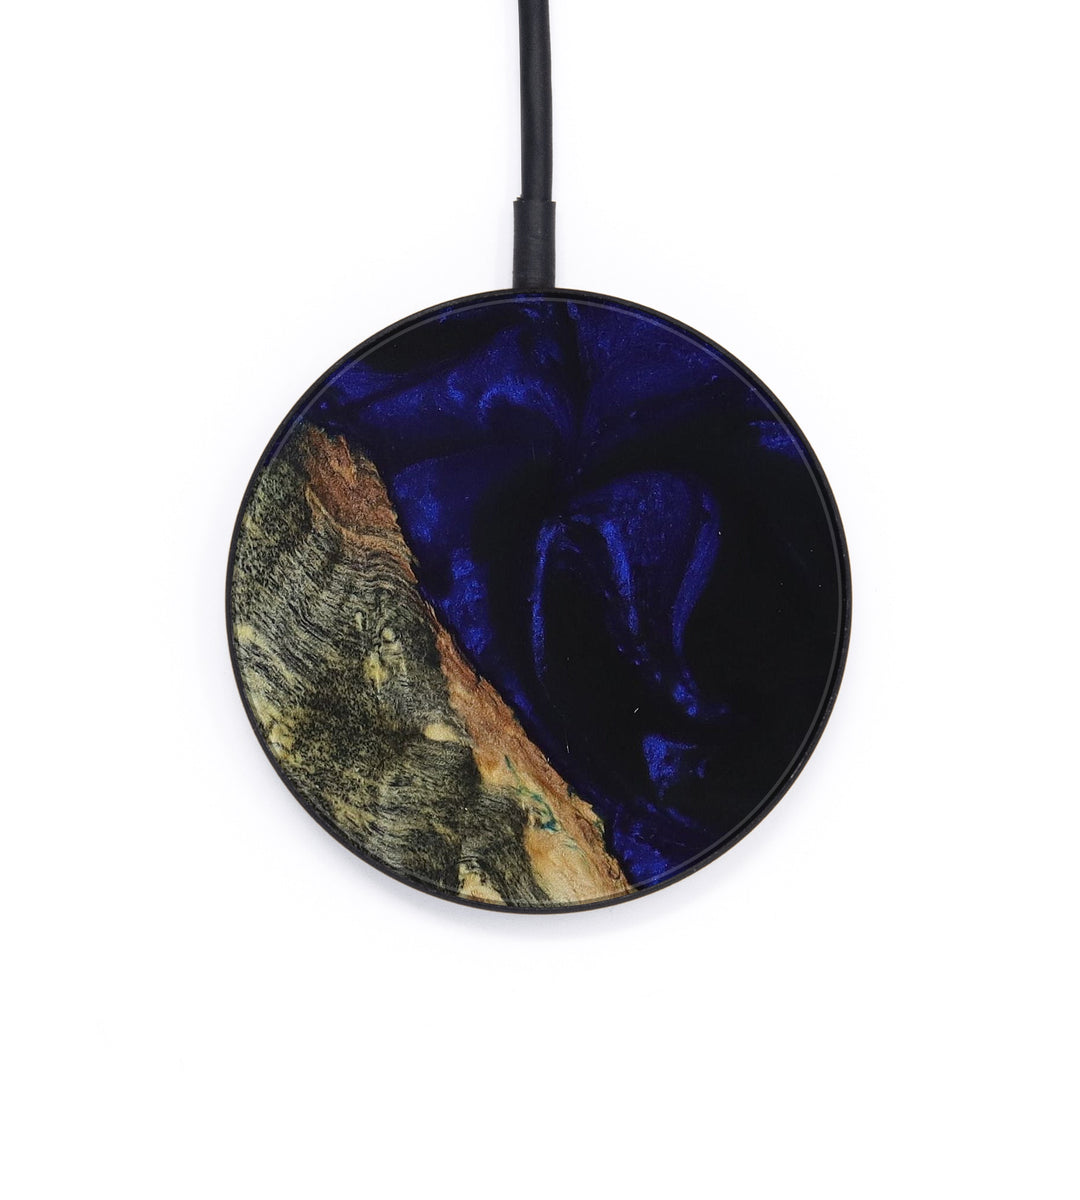 Circle Wood+Resin Wireless Charger - Colli (Dark Blue, 393327)